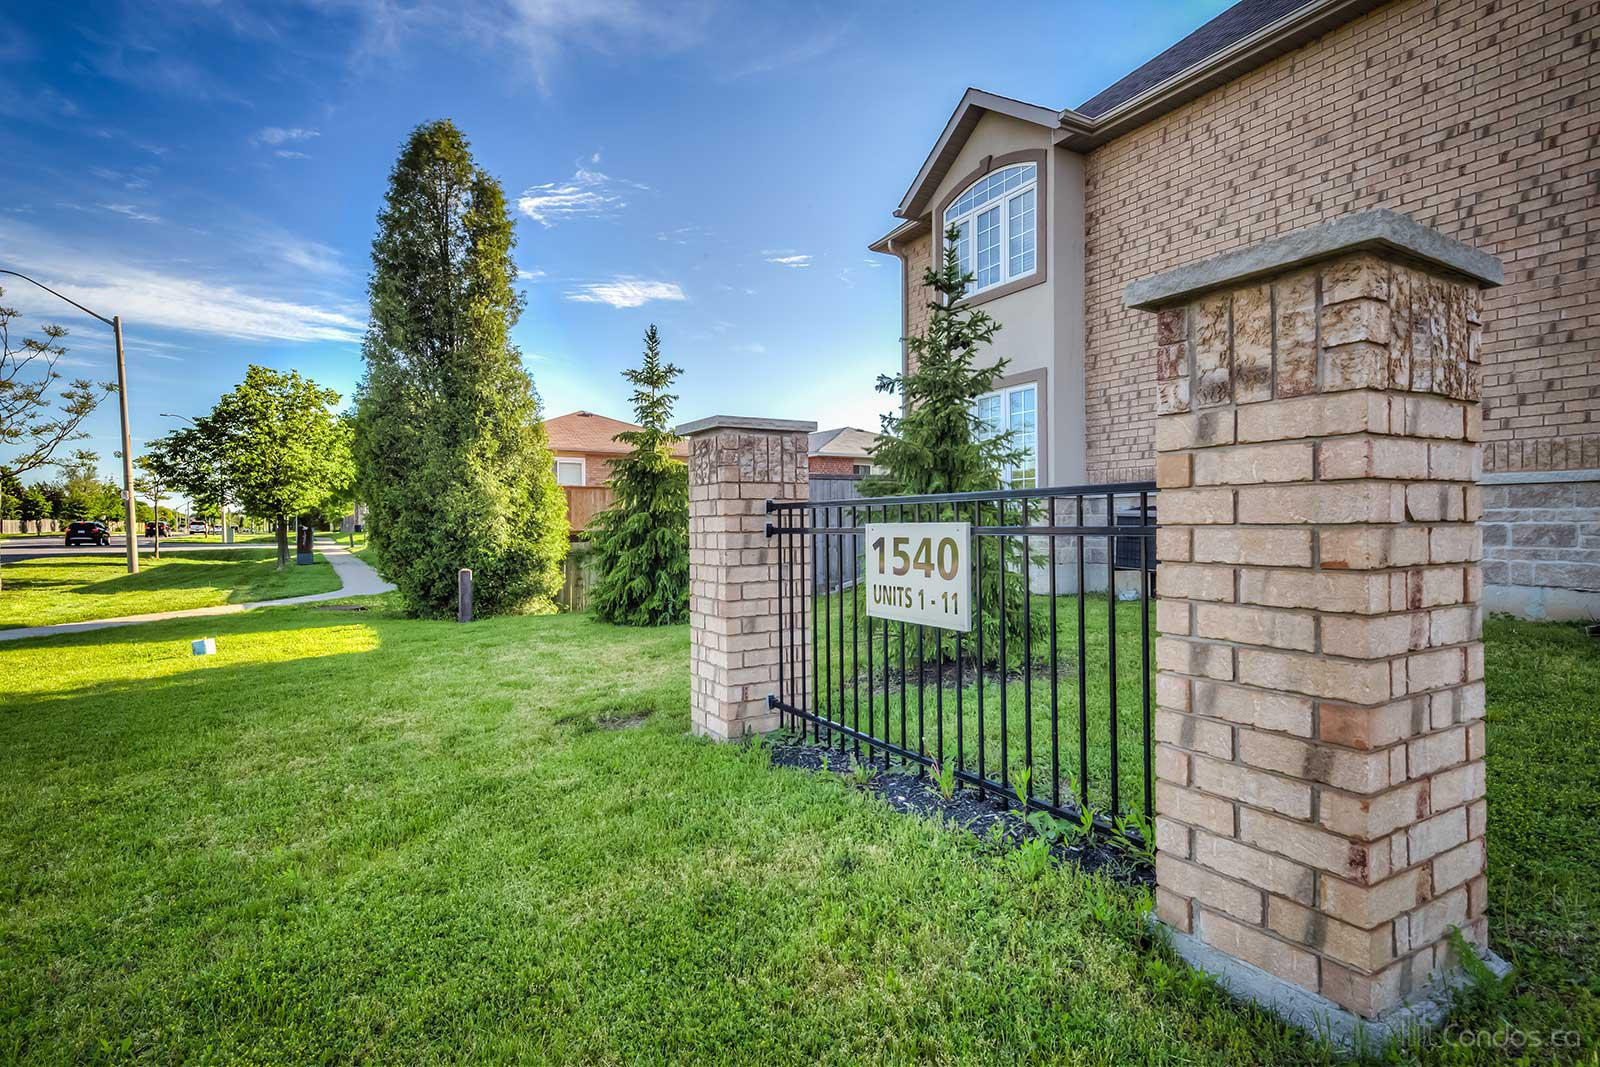 1540 Upper Gage Condos at 1540 Upper Gage Ave, Hamilton City 1